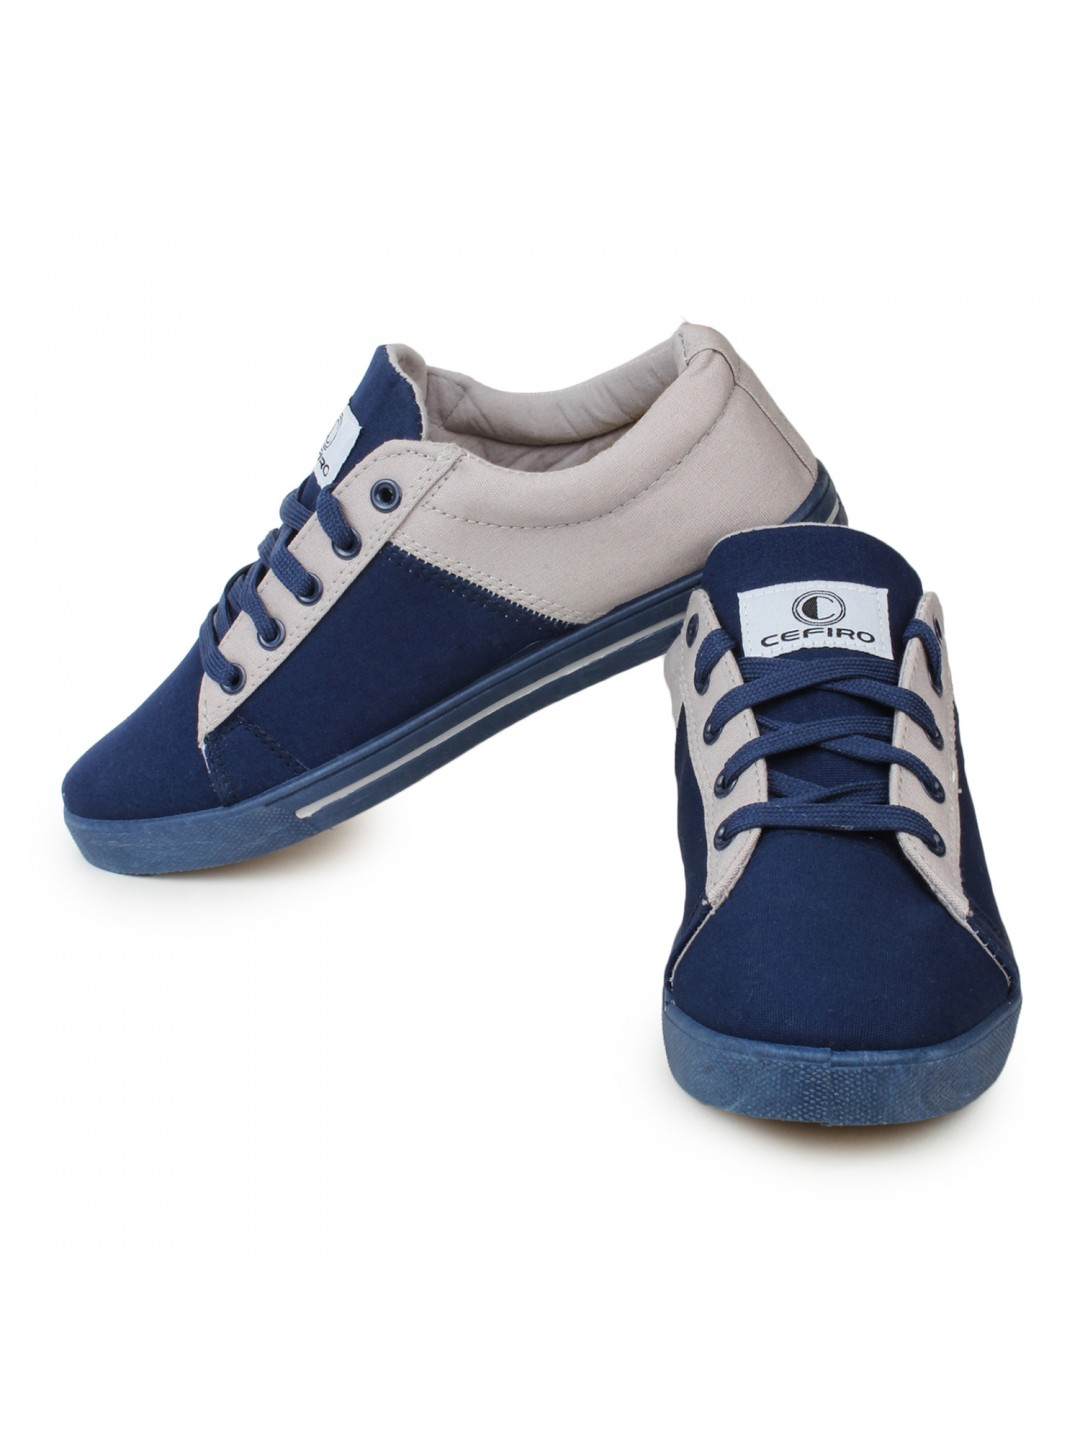 cefiro casual shoes fun07 navy blue grey ccs0030